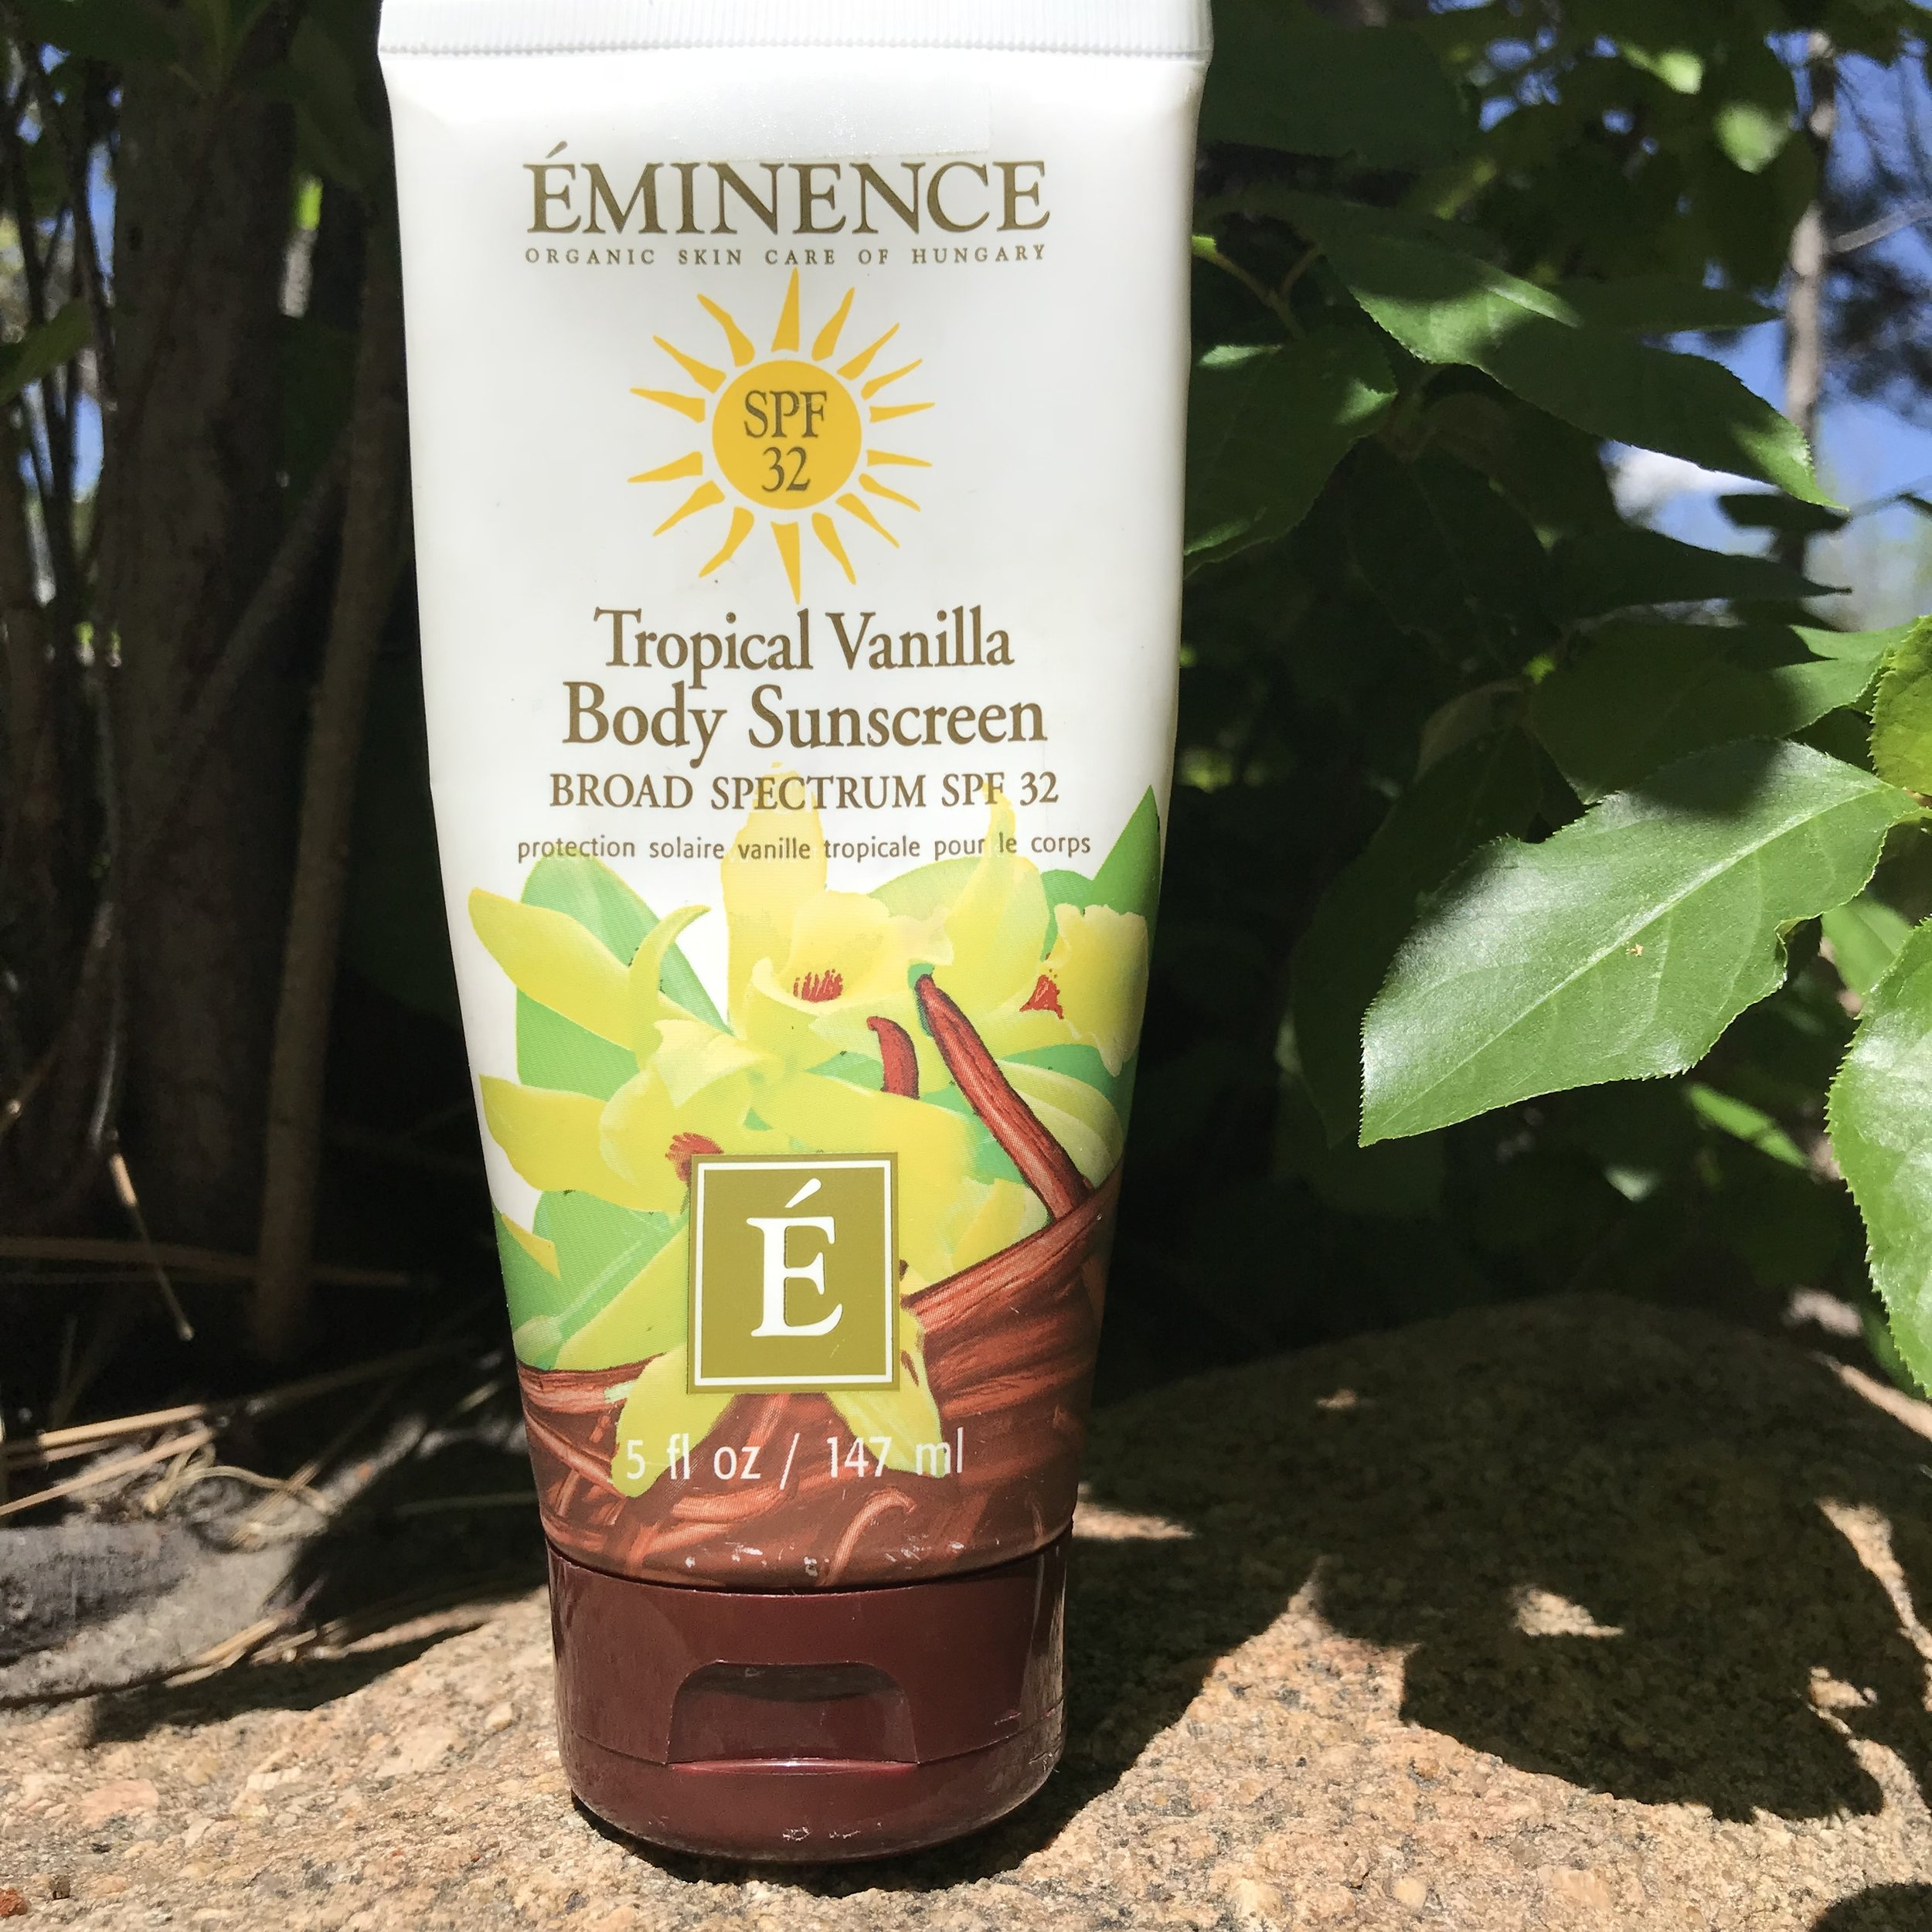 My favorite body sunscreen, available at Your Bliss Skin & Body Care